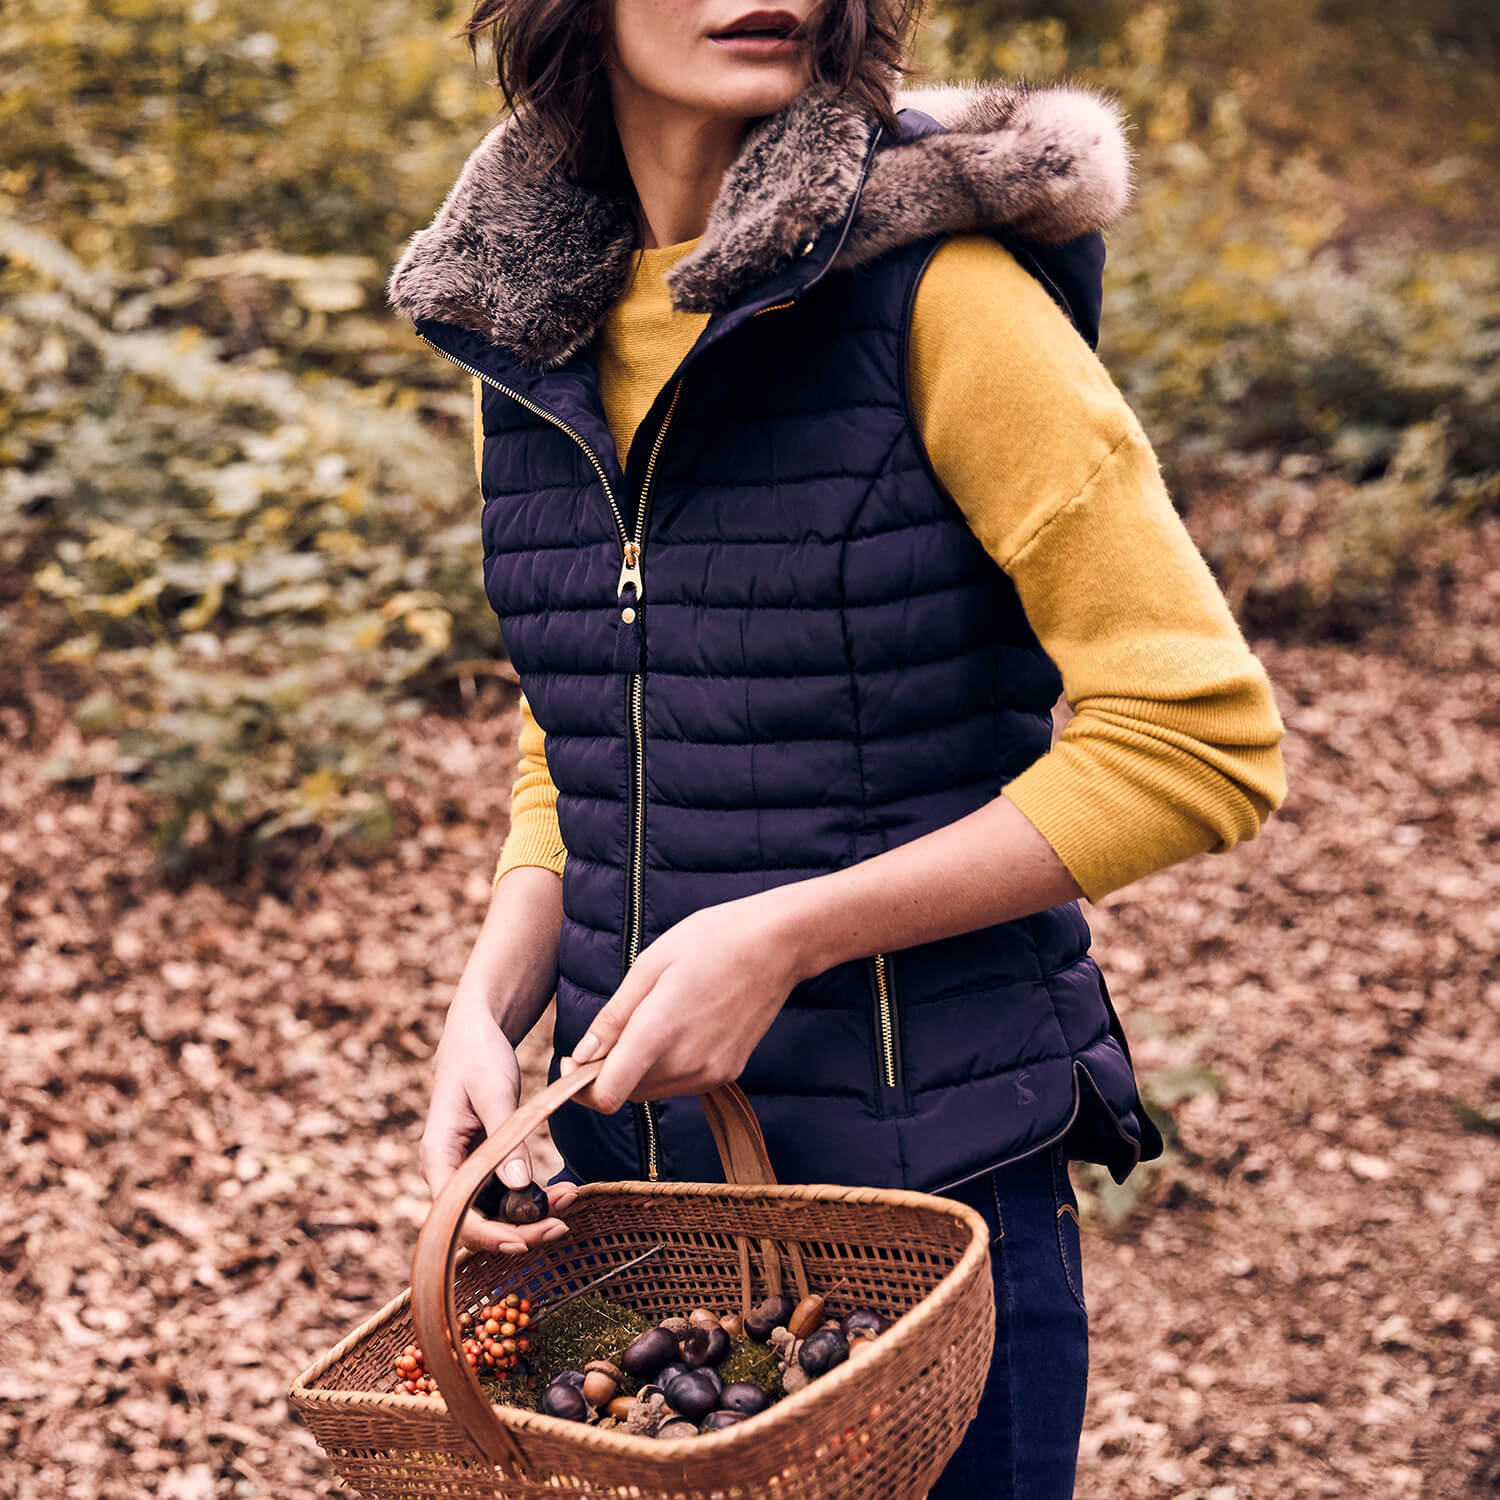 How to wear a gilet